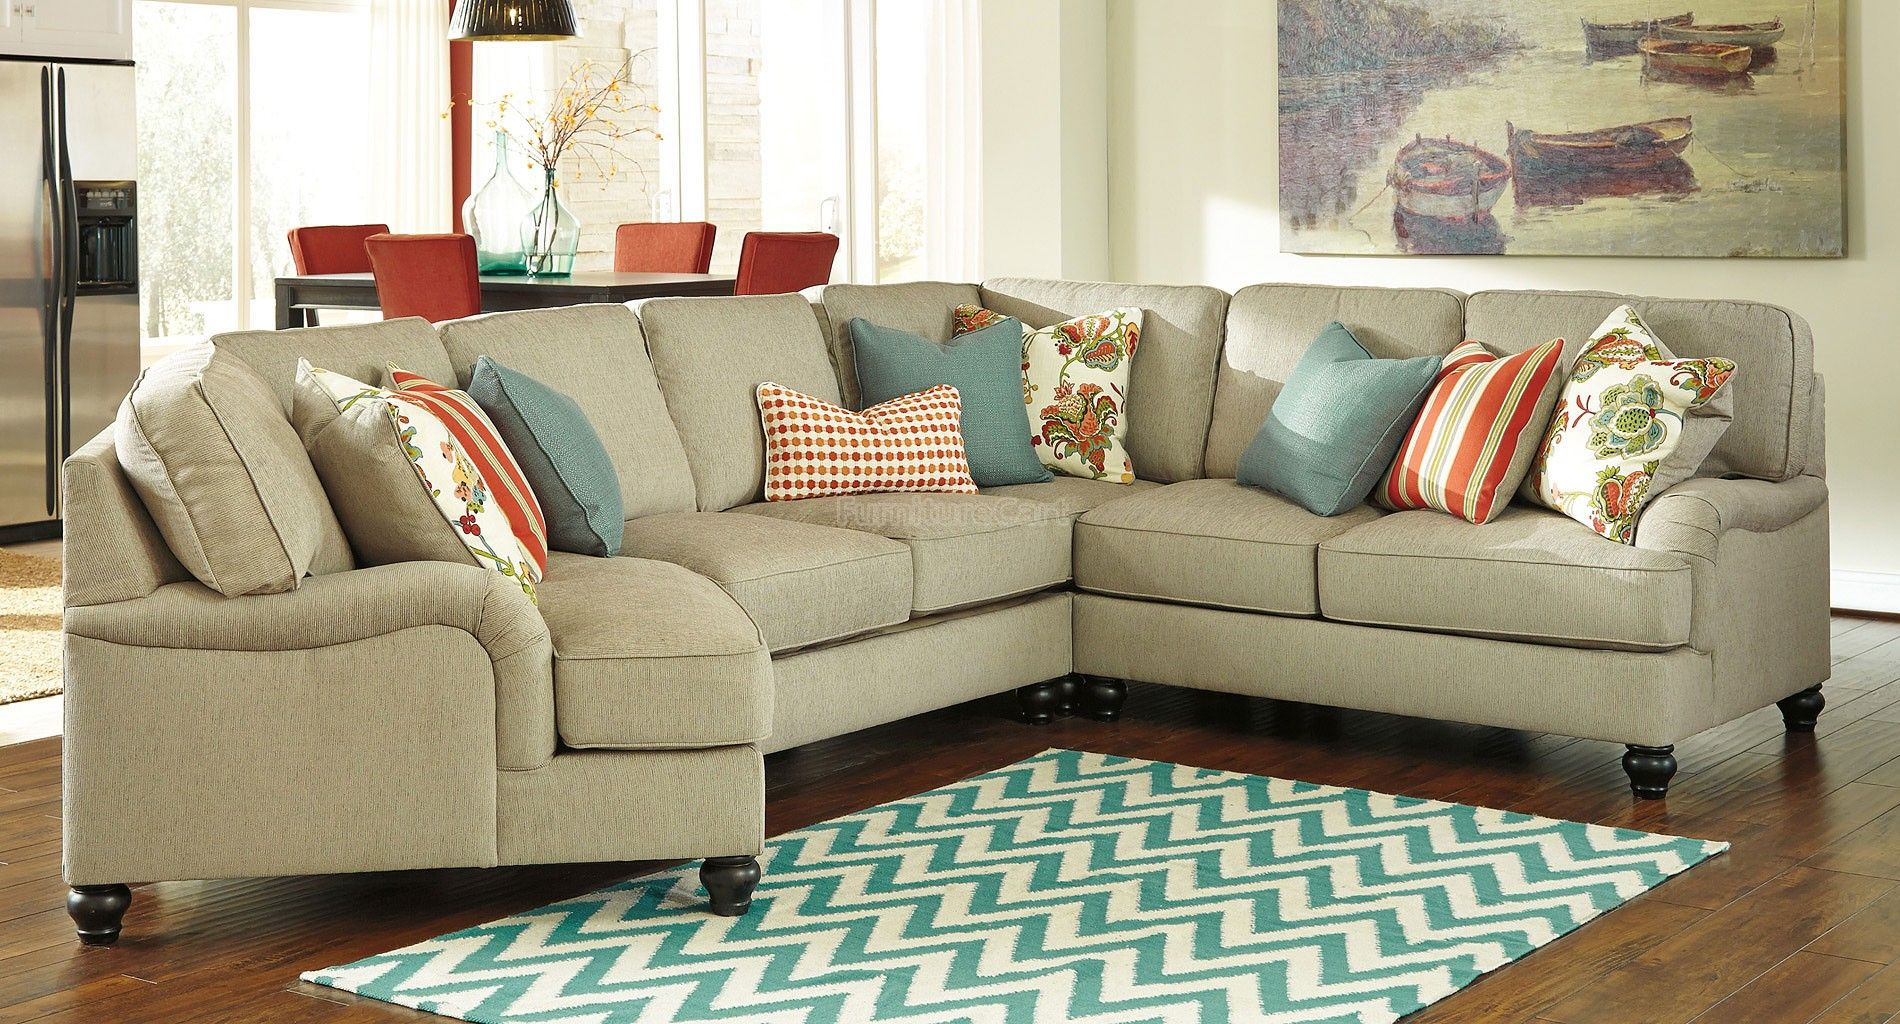 Kerridon Putty Modular Sectional W Cuddler In 2020